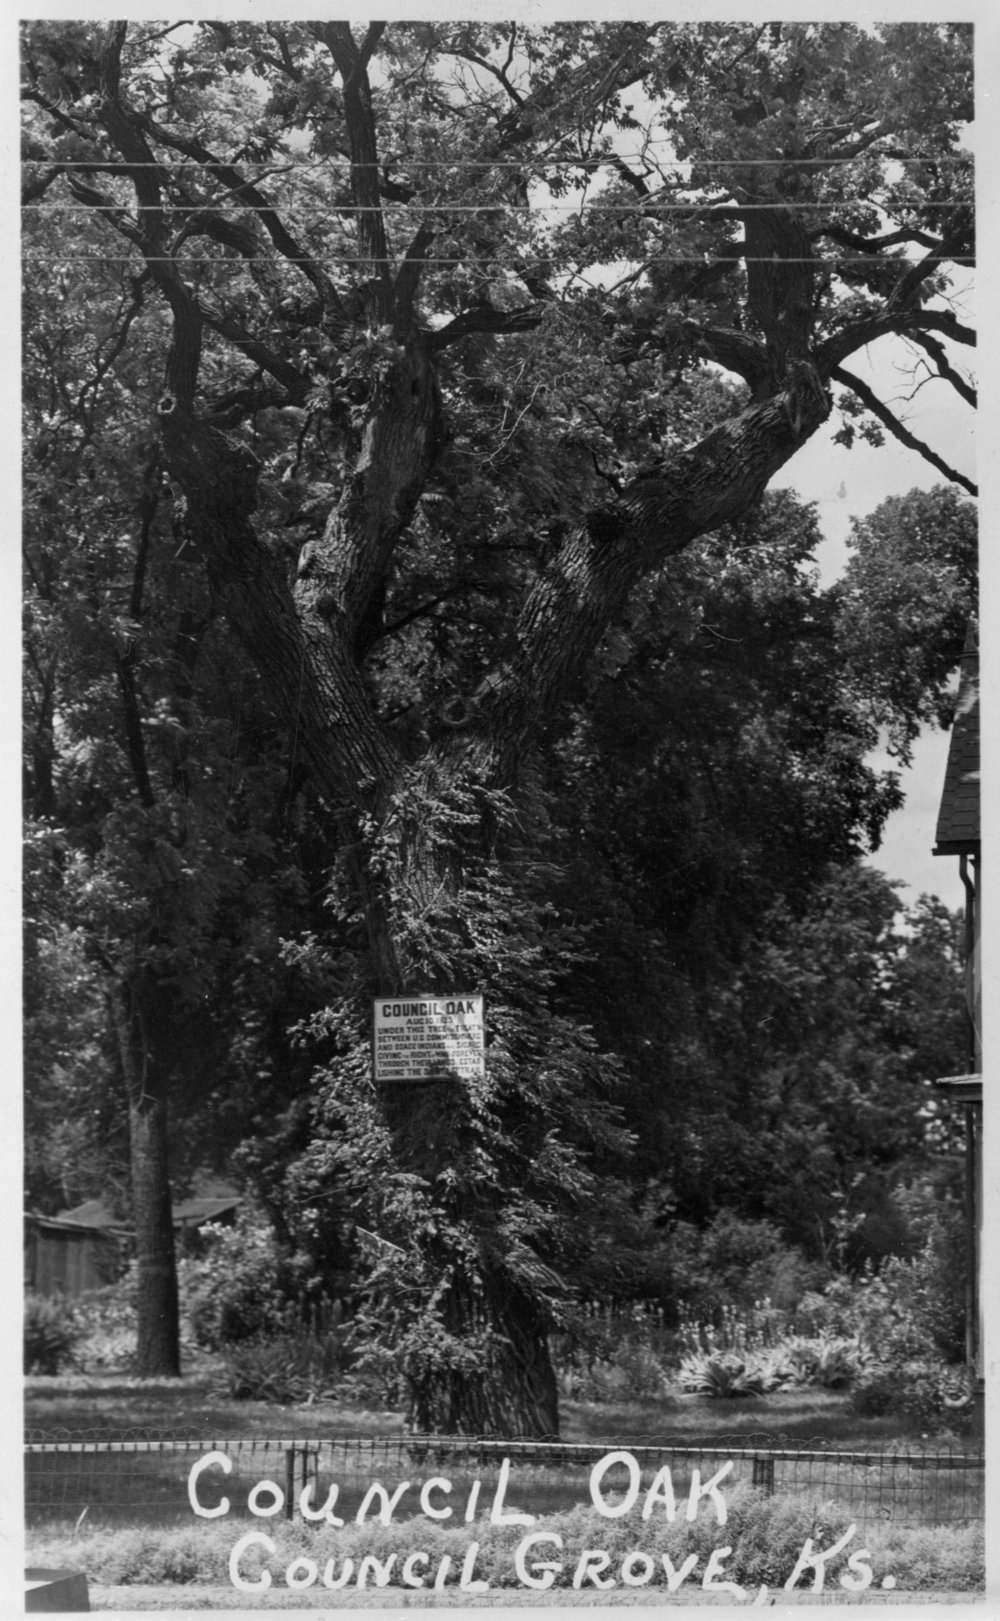 The Council Oak tree located in Council Grove, Kansas is located where the Council Grove treaty was held between William Clark and the Osage in 1825.